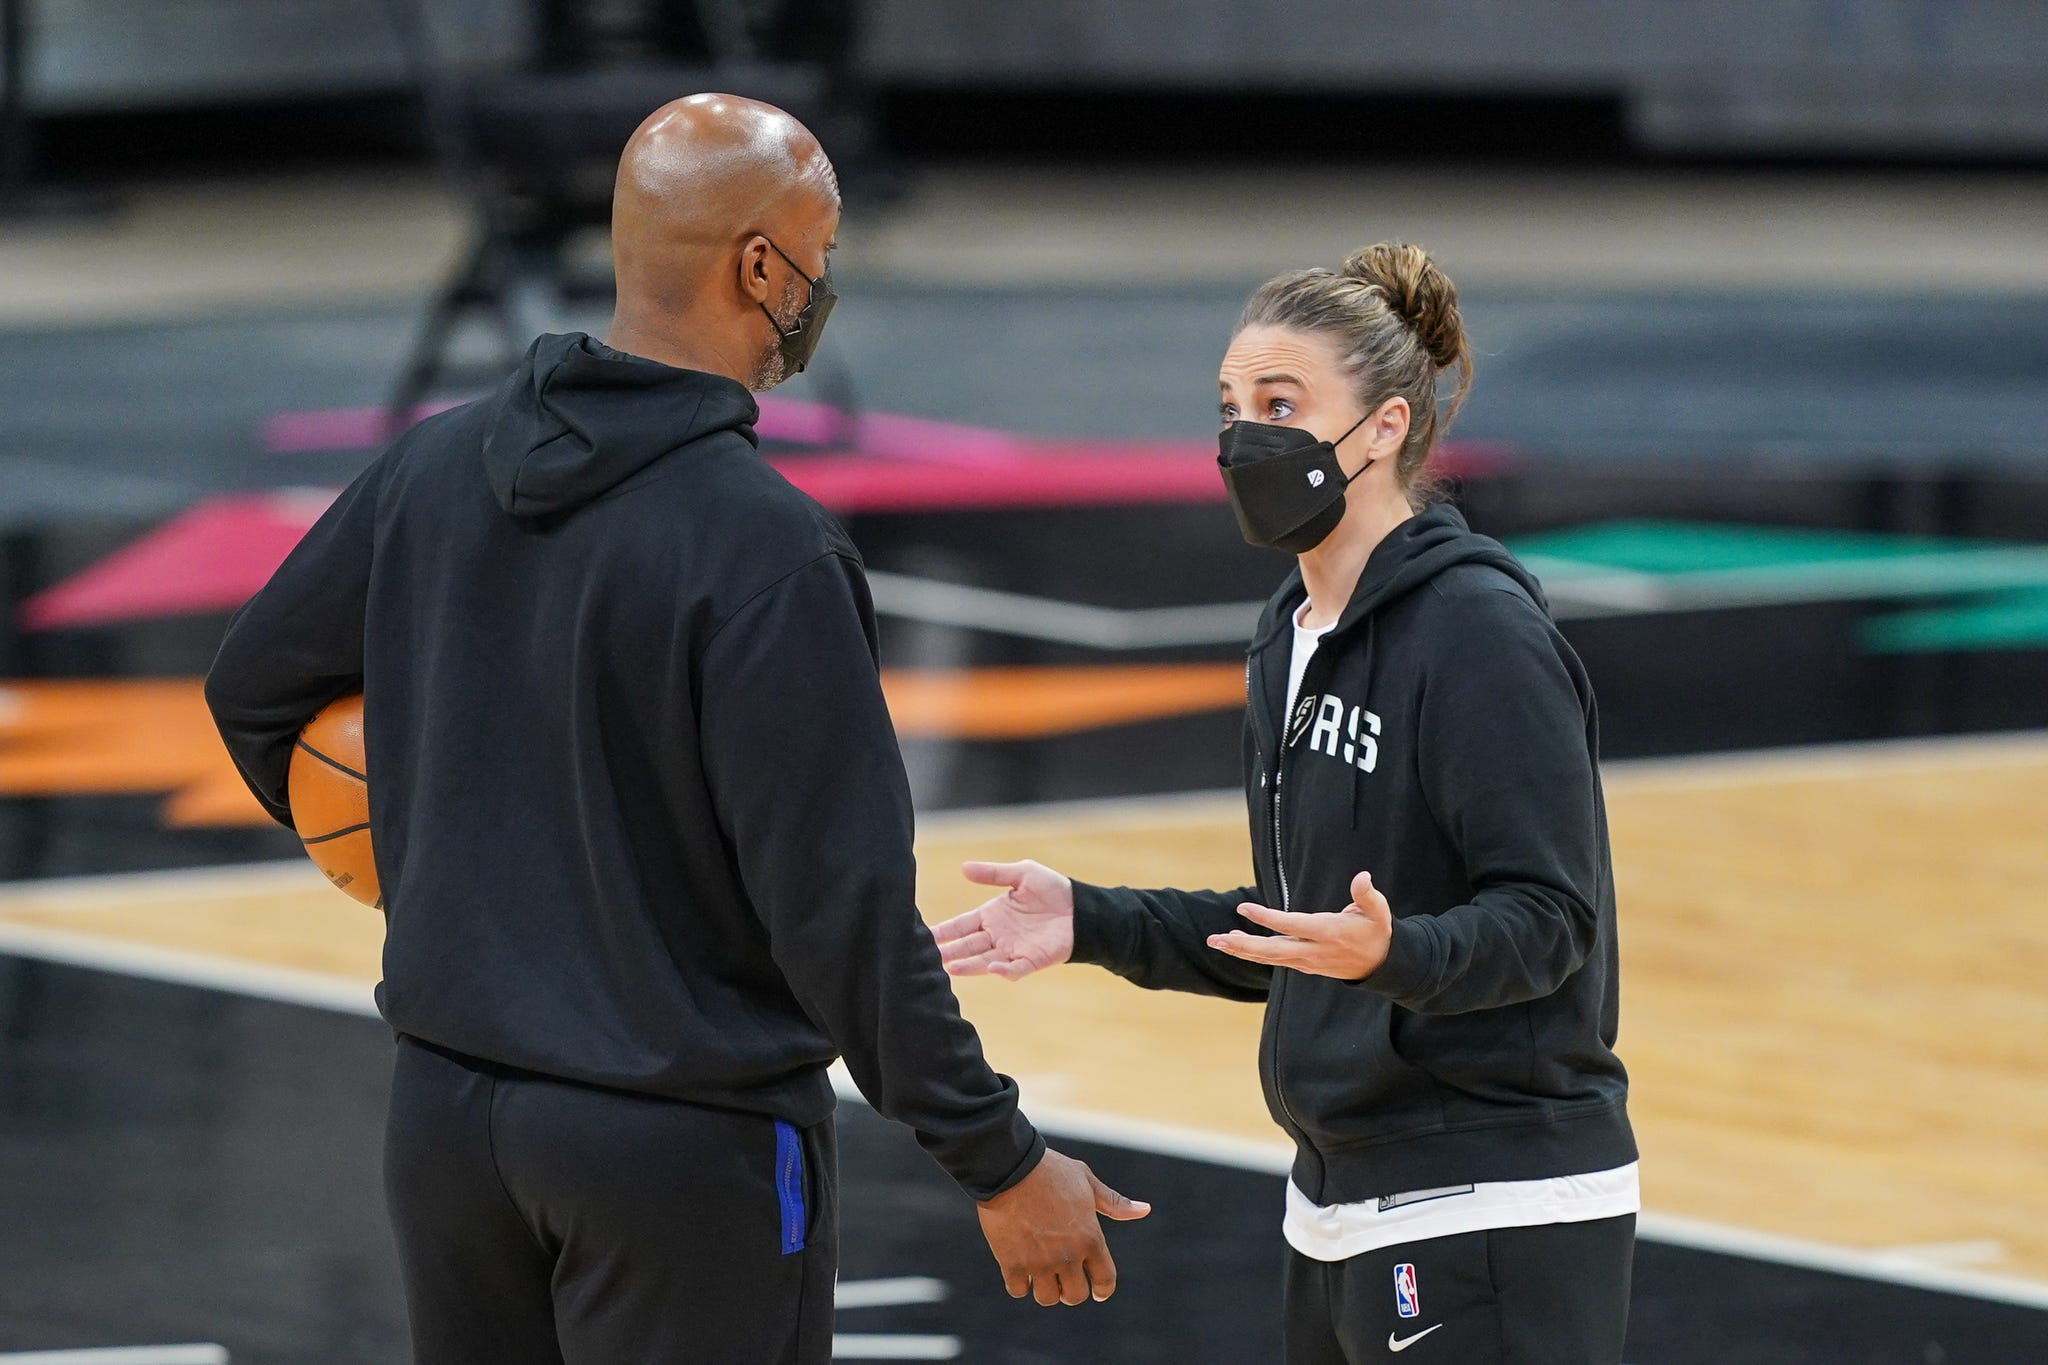 NBA coaching carousel: With six vacancies, Becky Hammon and Chauncey Billups could get new jobs